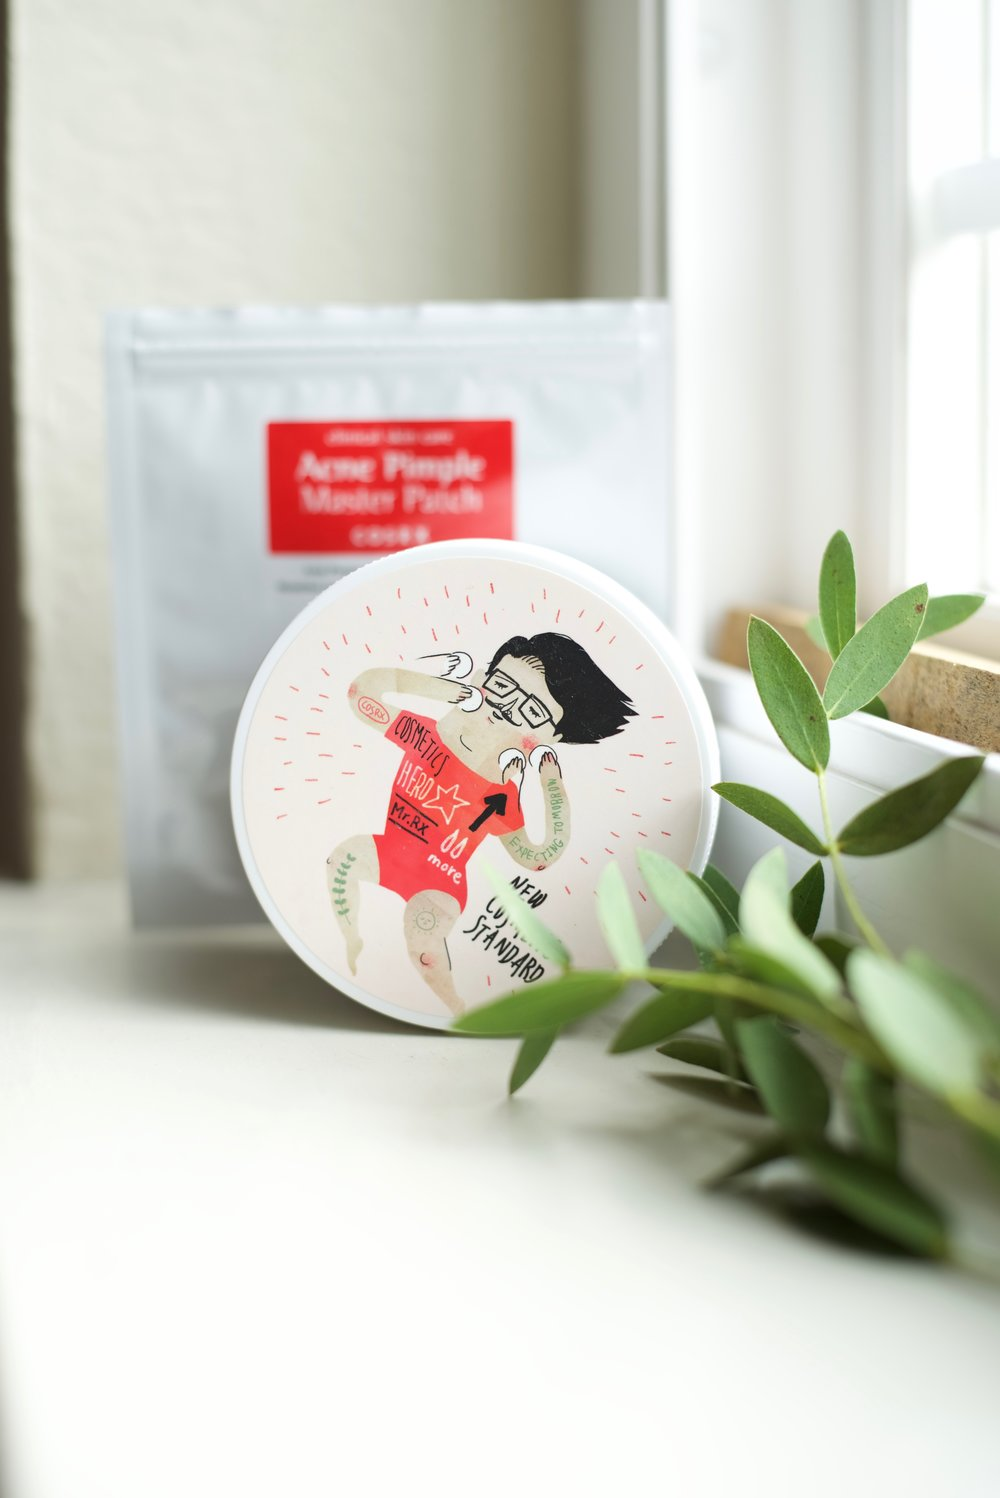 COSRX Acne Pimple Master Patch One Step Pimple Clear Pad Review